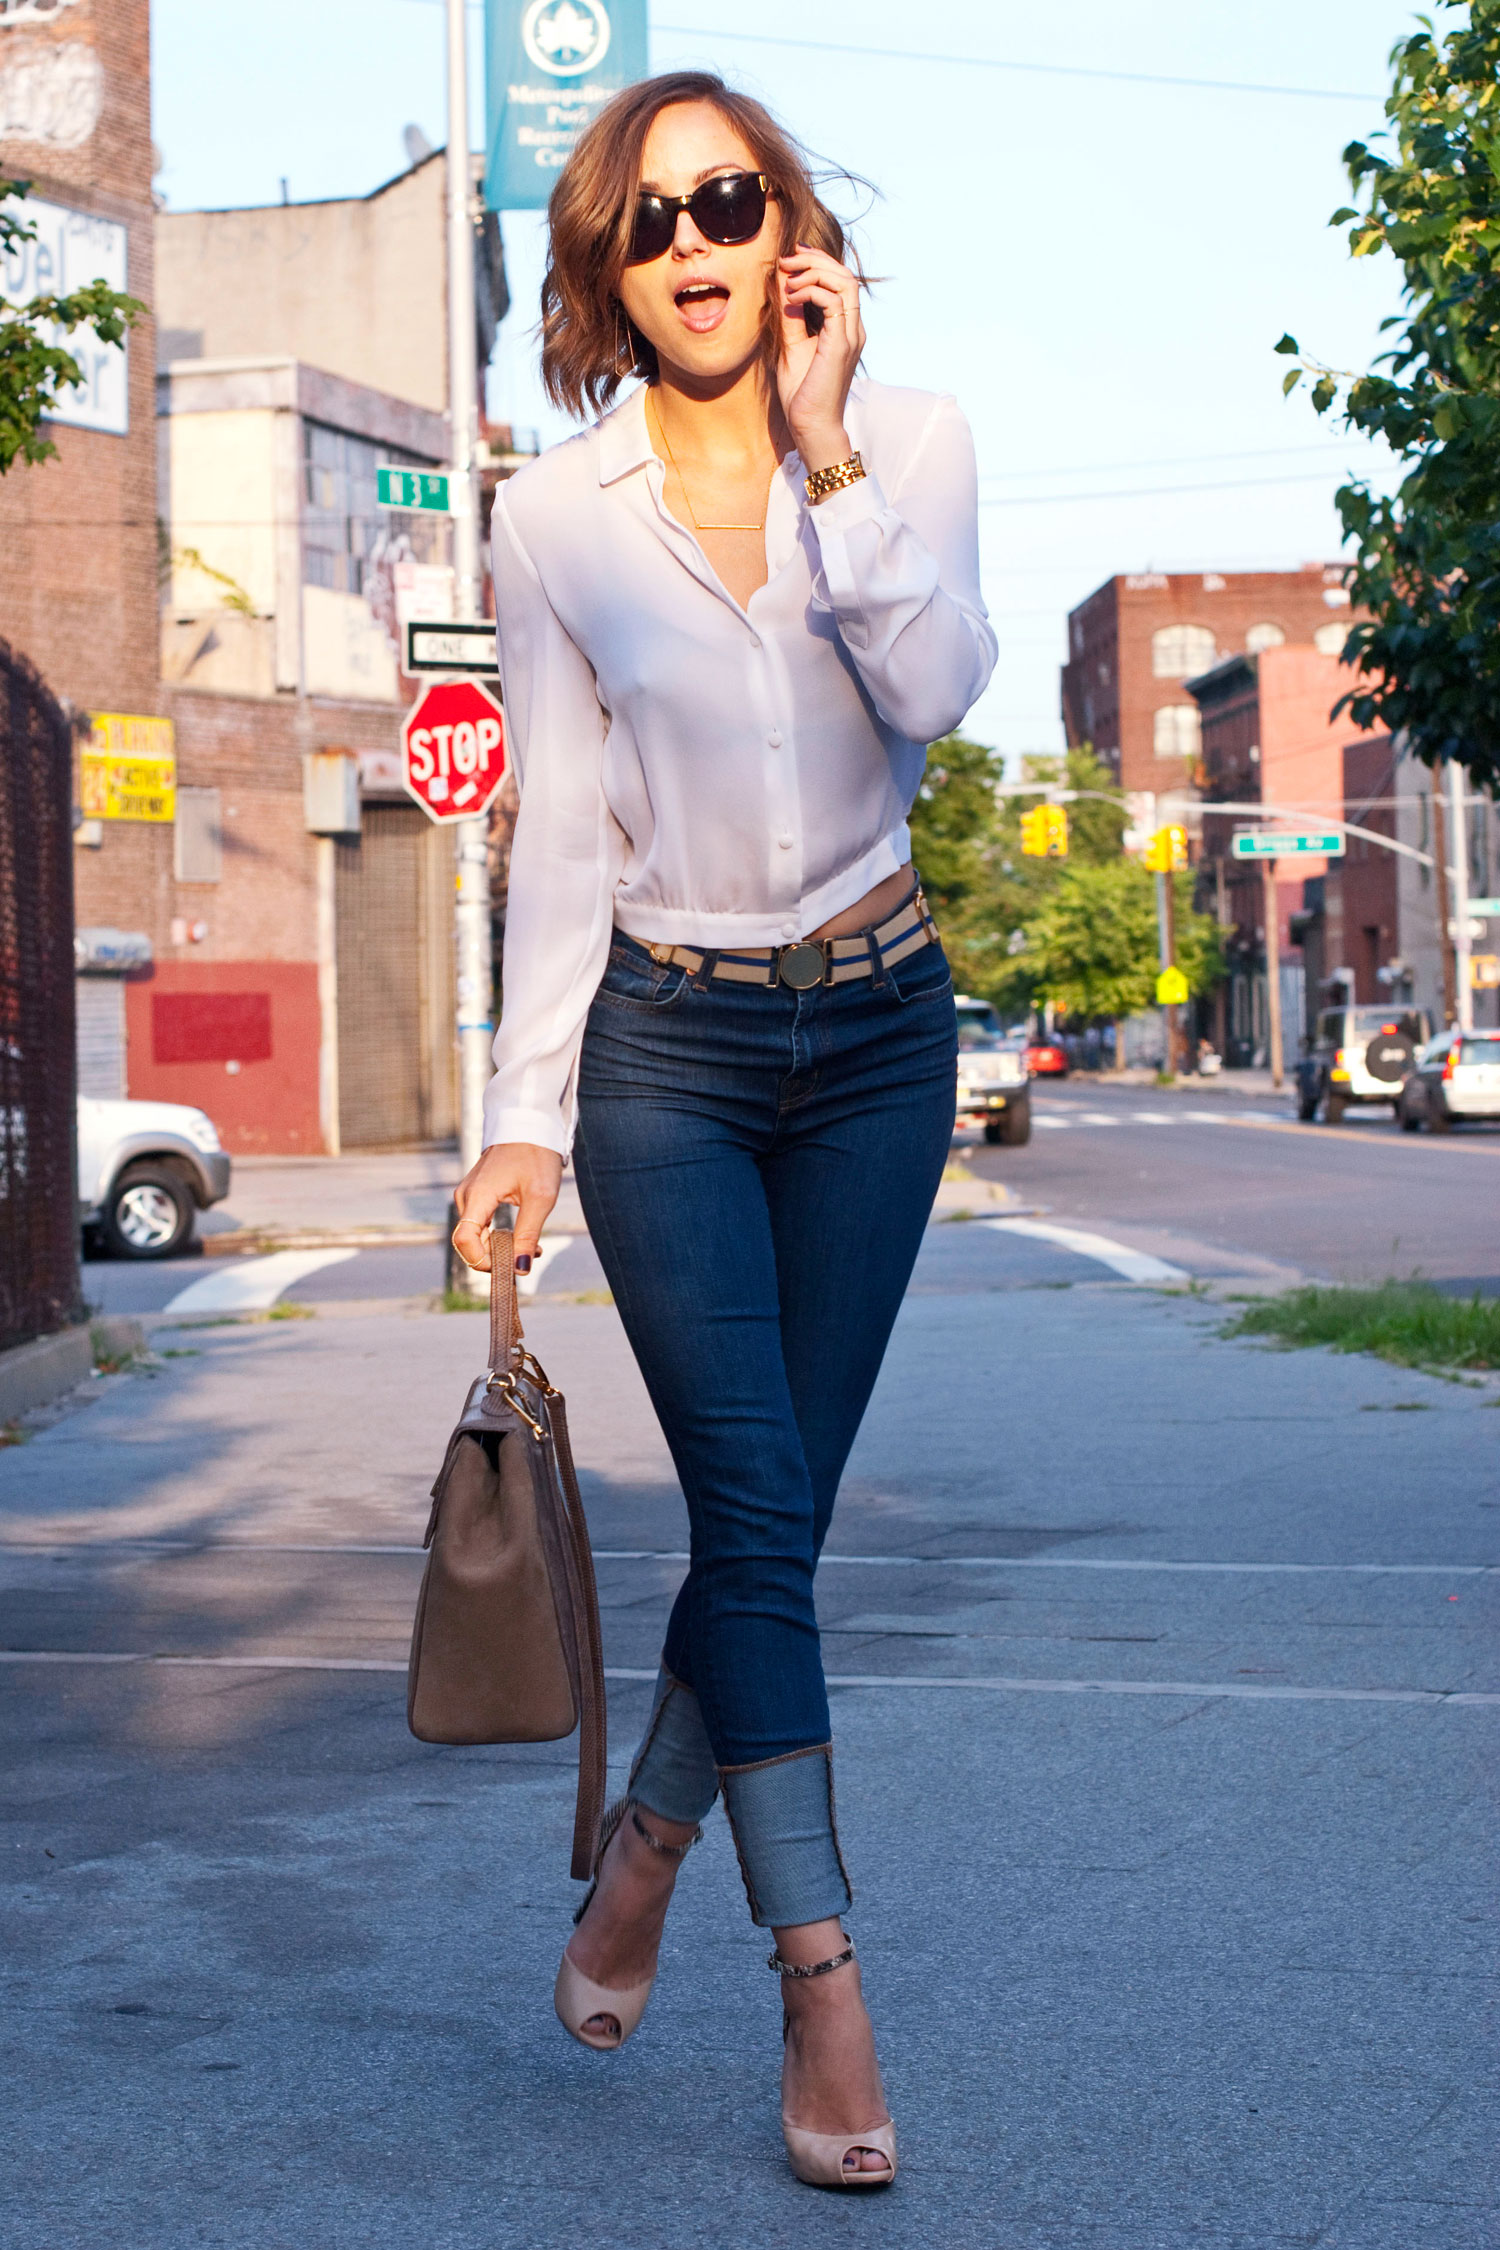 White Blouse And Jeans 9